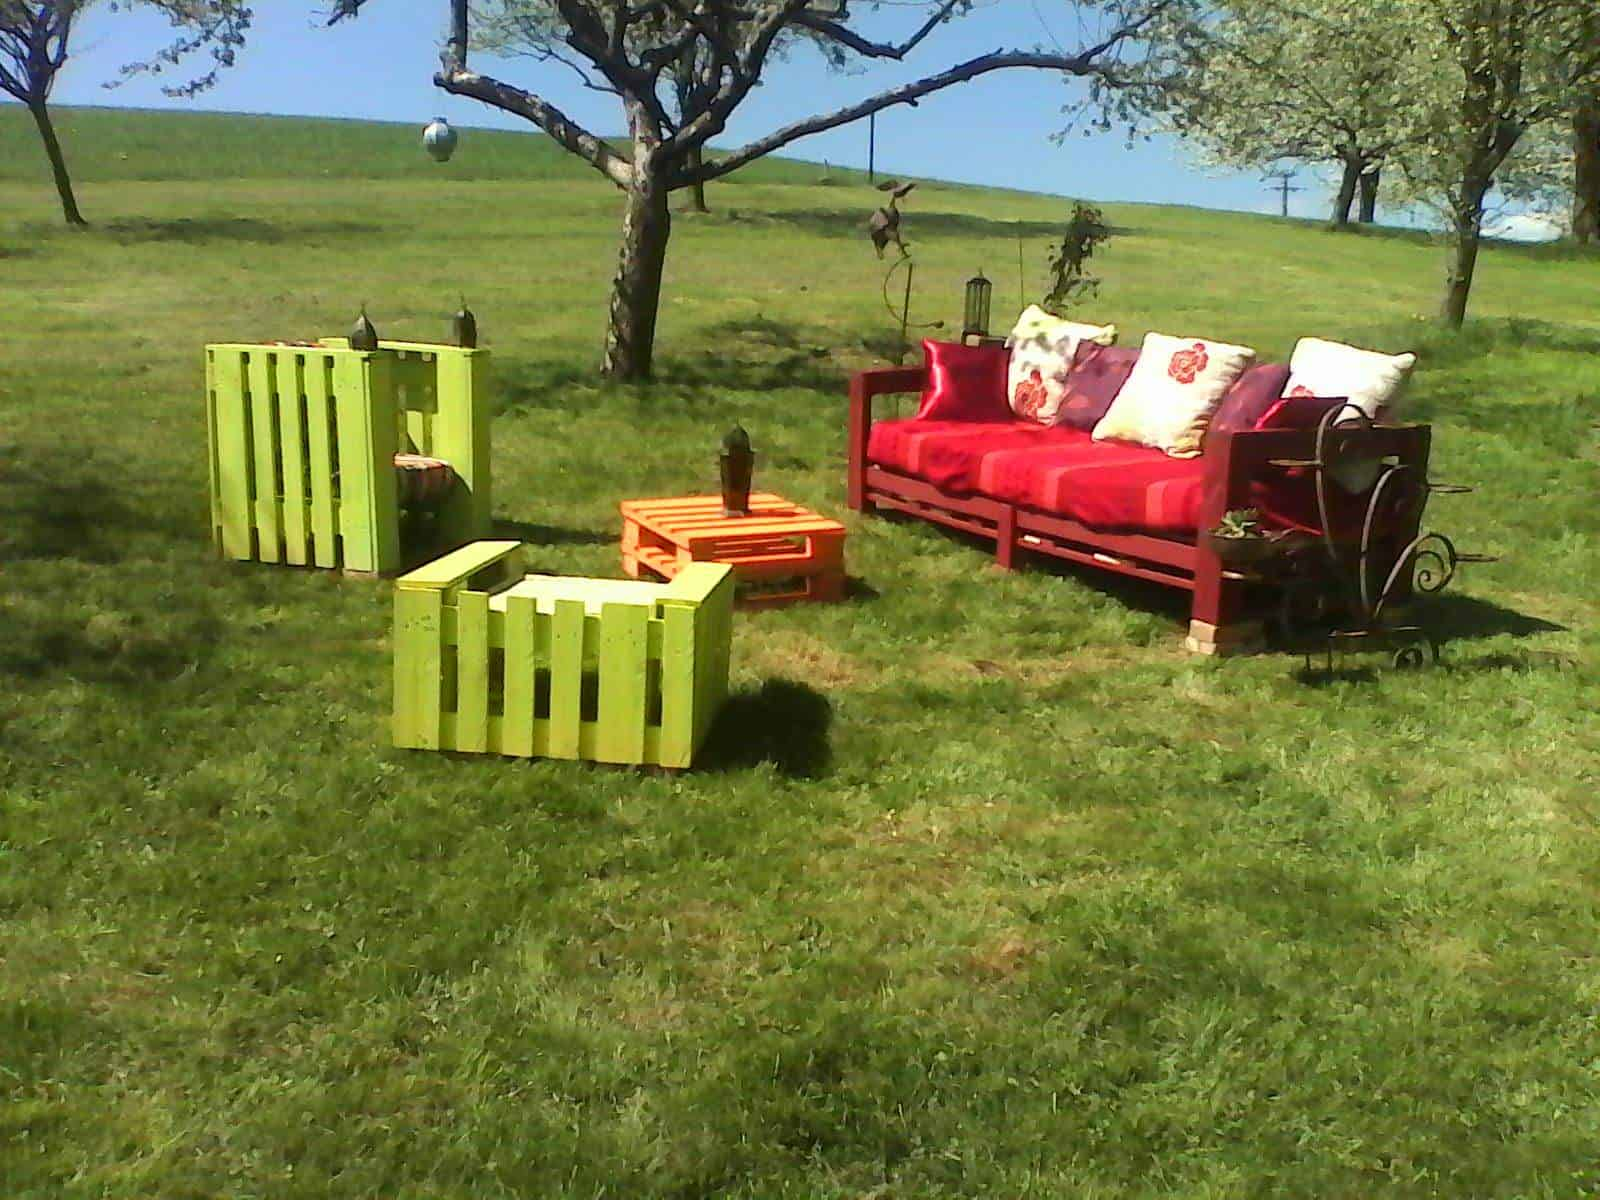 salon de jardin en palettes colorful pallets garden set. Black Bedroom Furniture Sets. Home Design Ideas